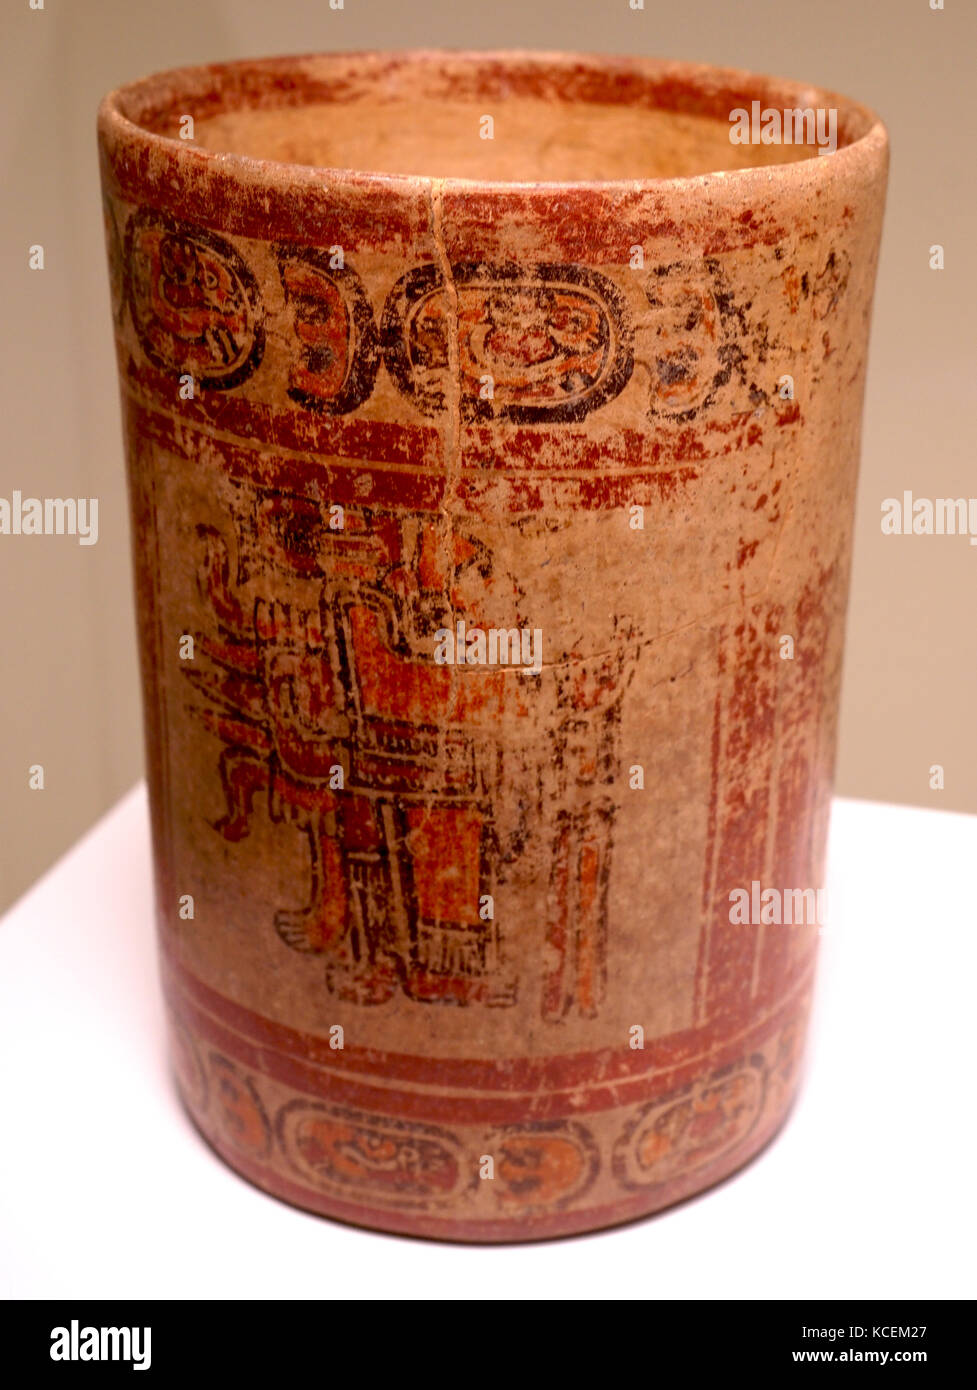 Ceramic cylindrical polychrome vessel from Honduras. Dated 8th Century BC - Stock Image